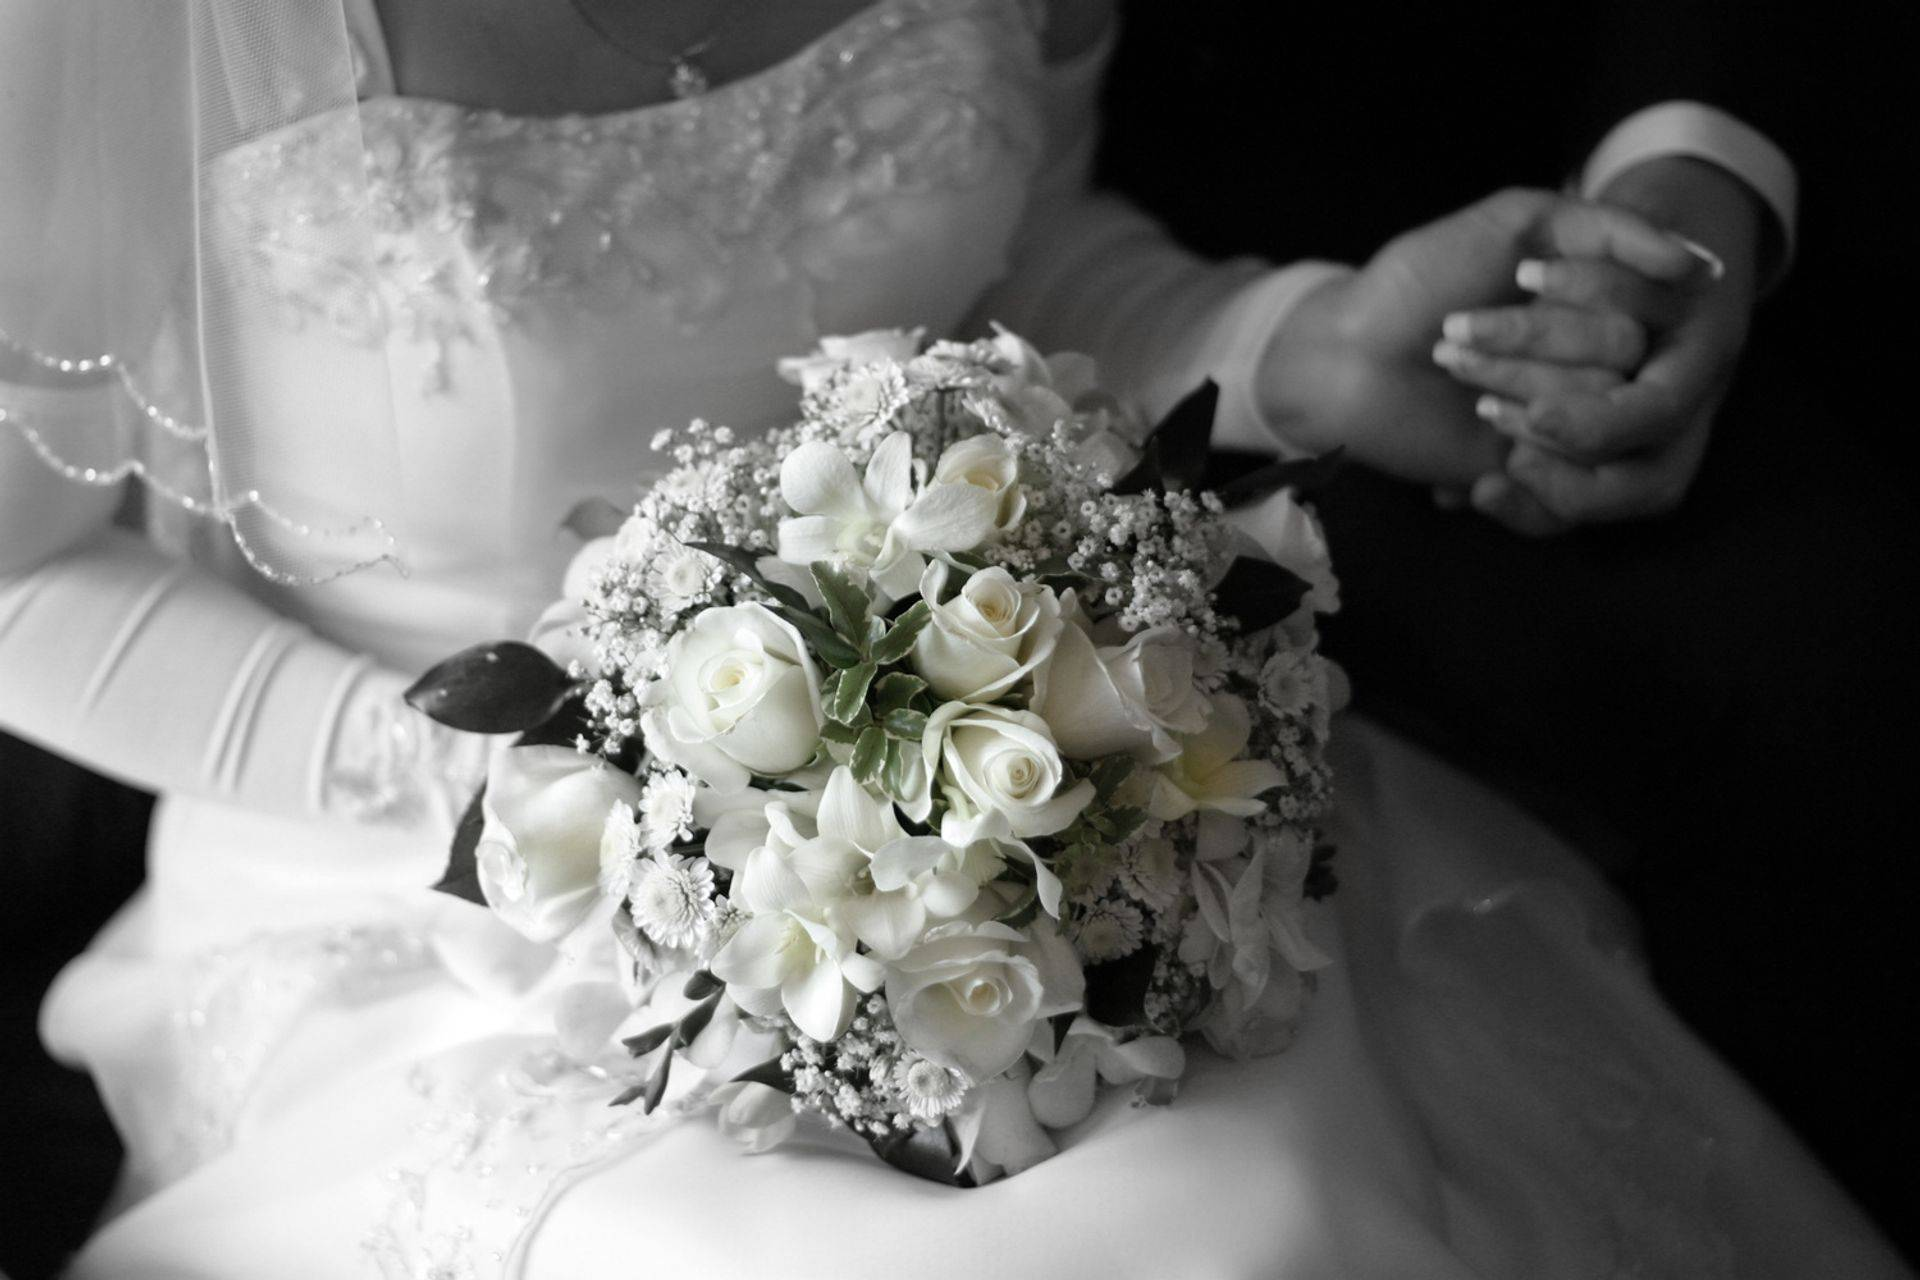 Real weddings! Suzie H. Bridal party, bouquets from Wedding Fantasy Bridal.